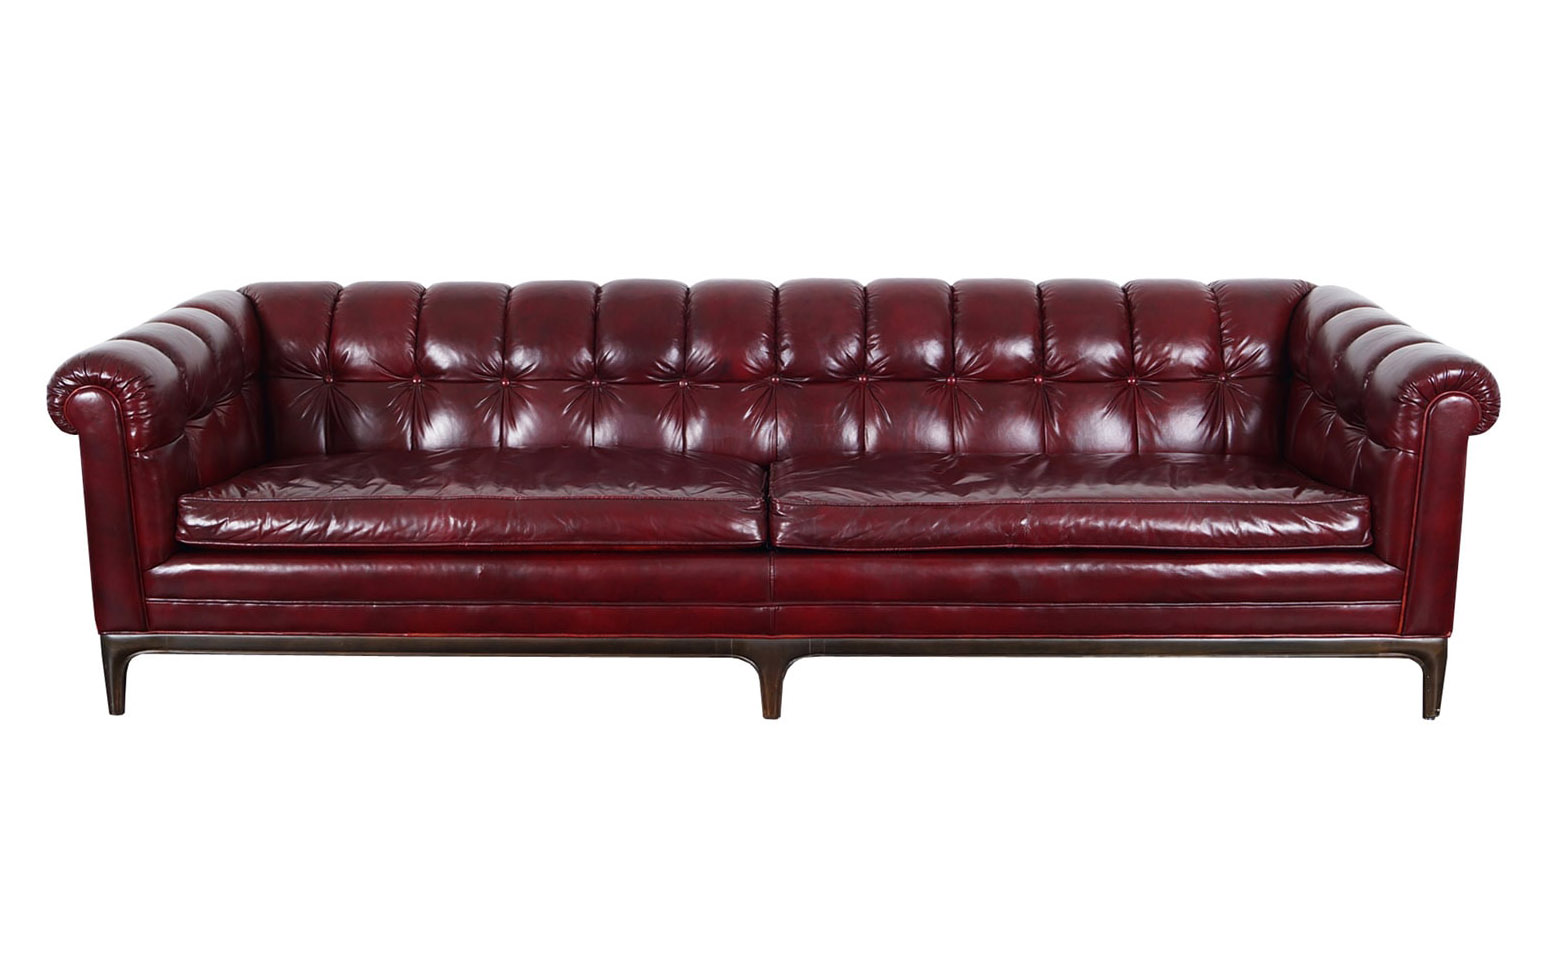 Vintage Biscuit Tufted Leather Sofa by Monteverdi Young